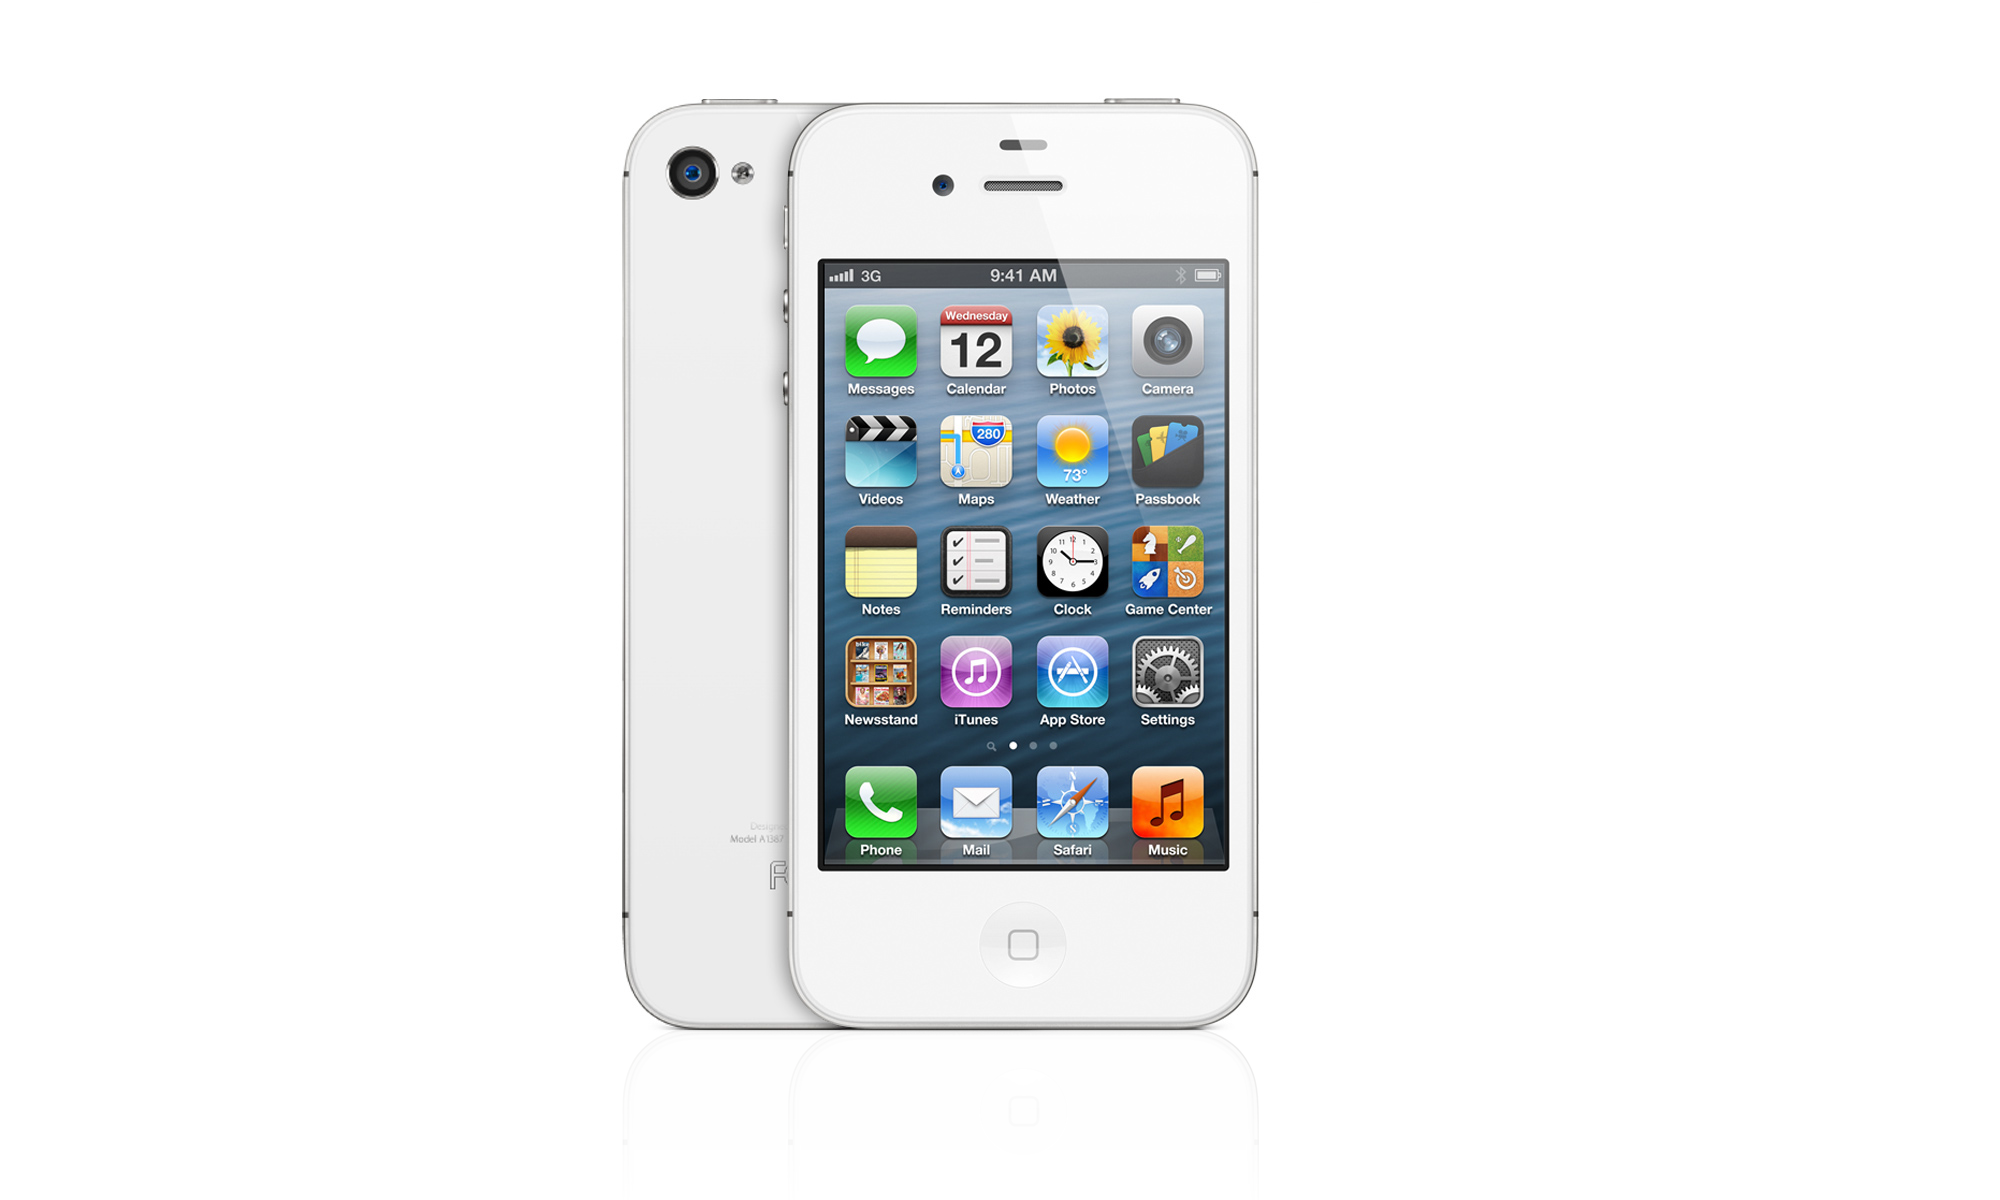 My newest toy - the 4S in white with 32 GB.